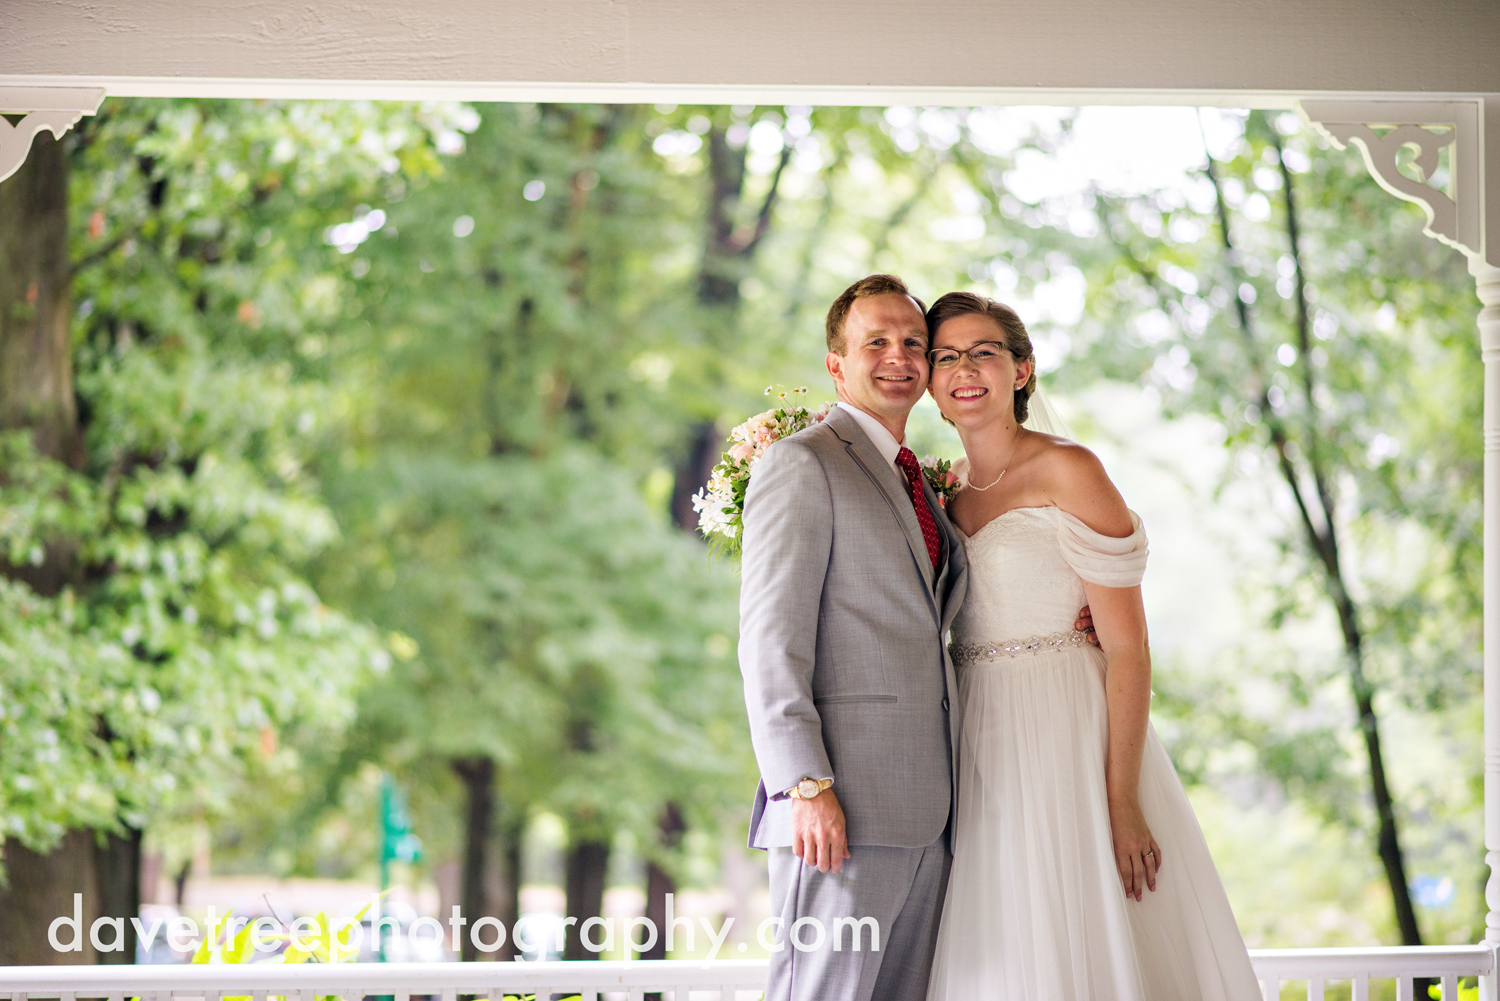 grand_haven_wedding_photographer_weaver_house_wedding_169.jpg